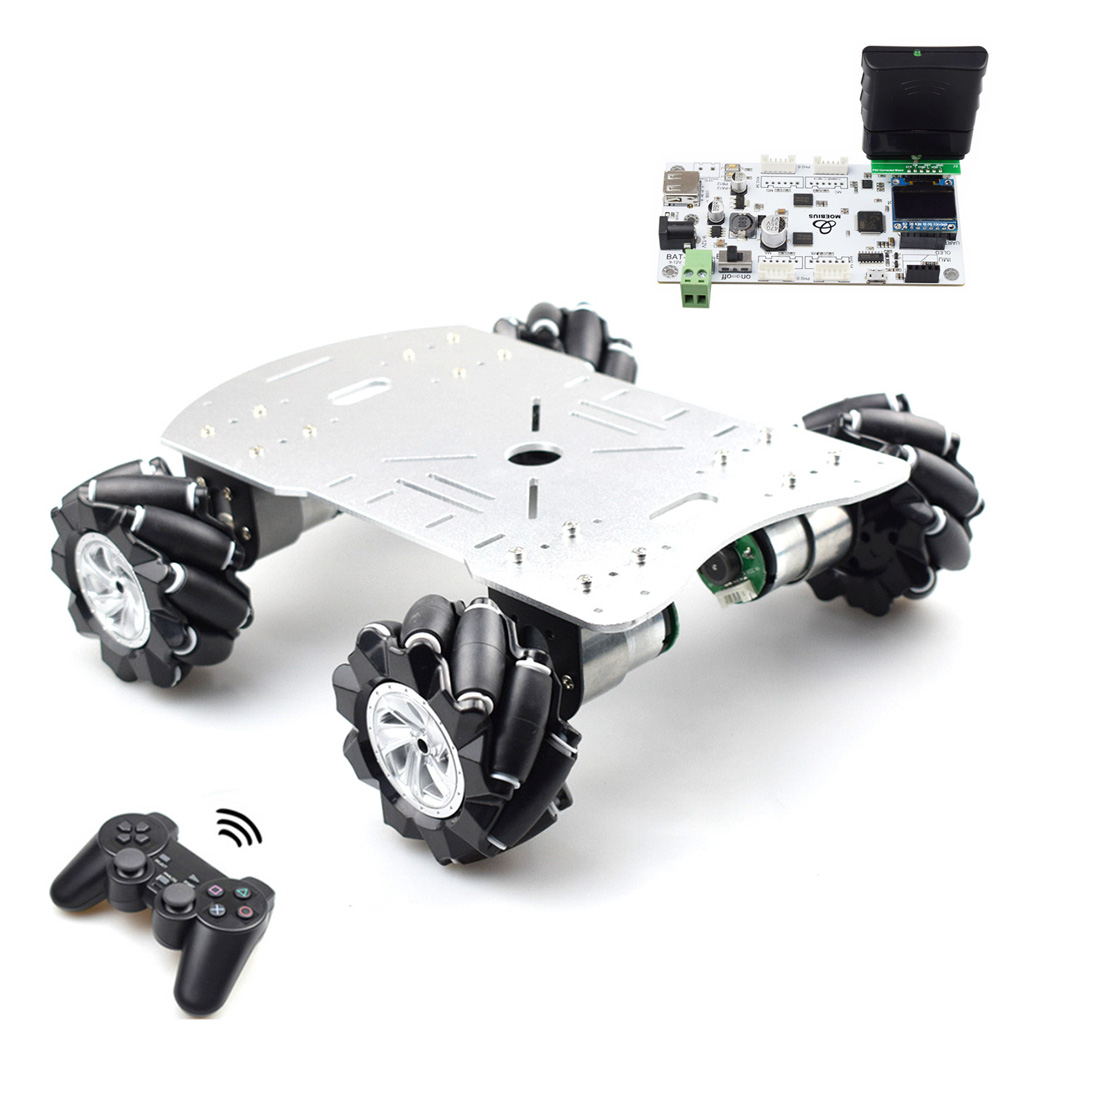 80mm Mecanum Metal Platform DIY Omni-Directional Mecanum Wheel Robot Car With STM32 Electronic Control (Without Power Supply)